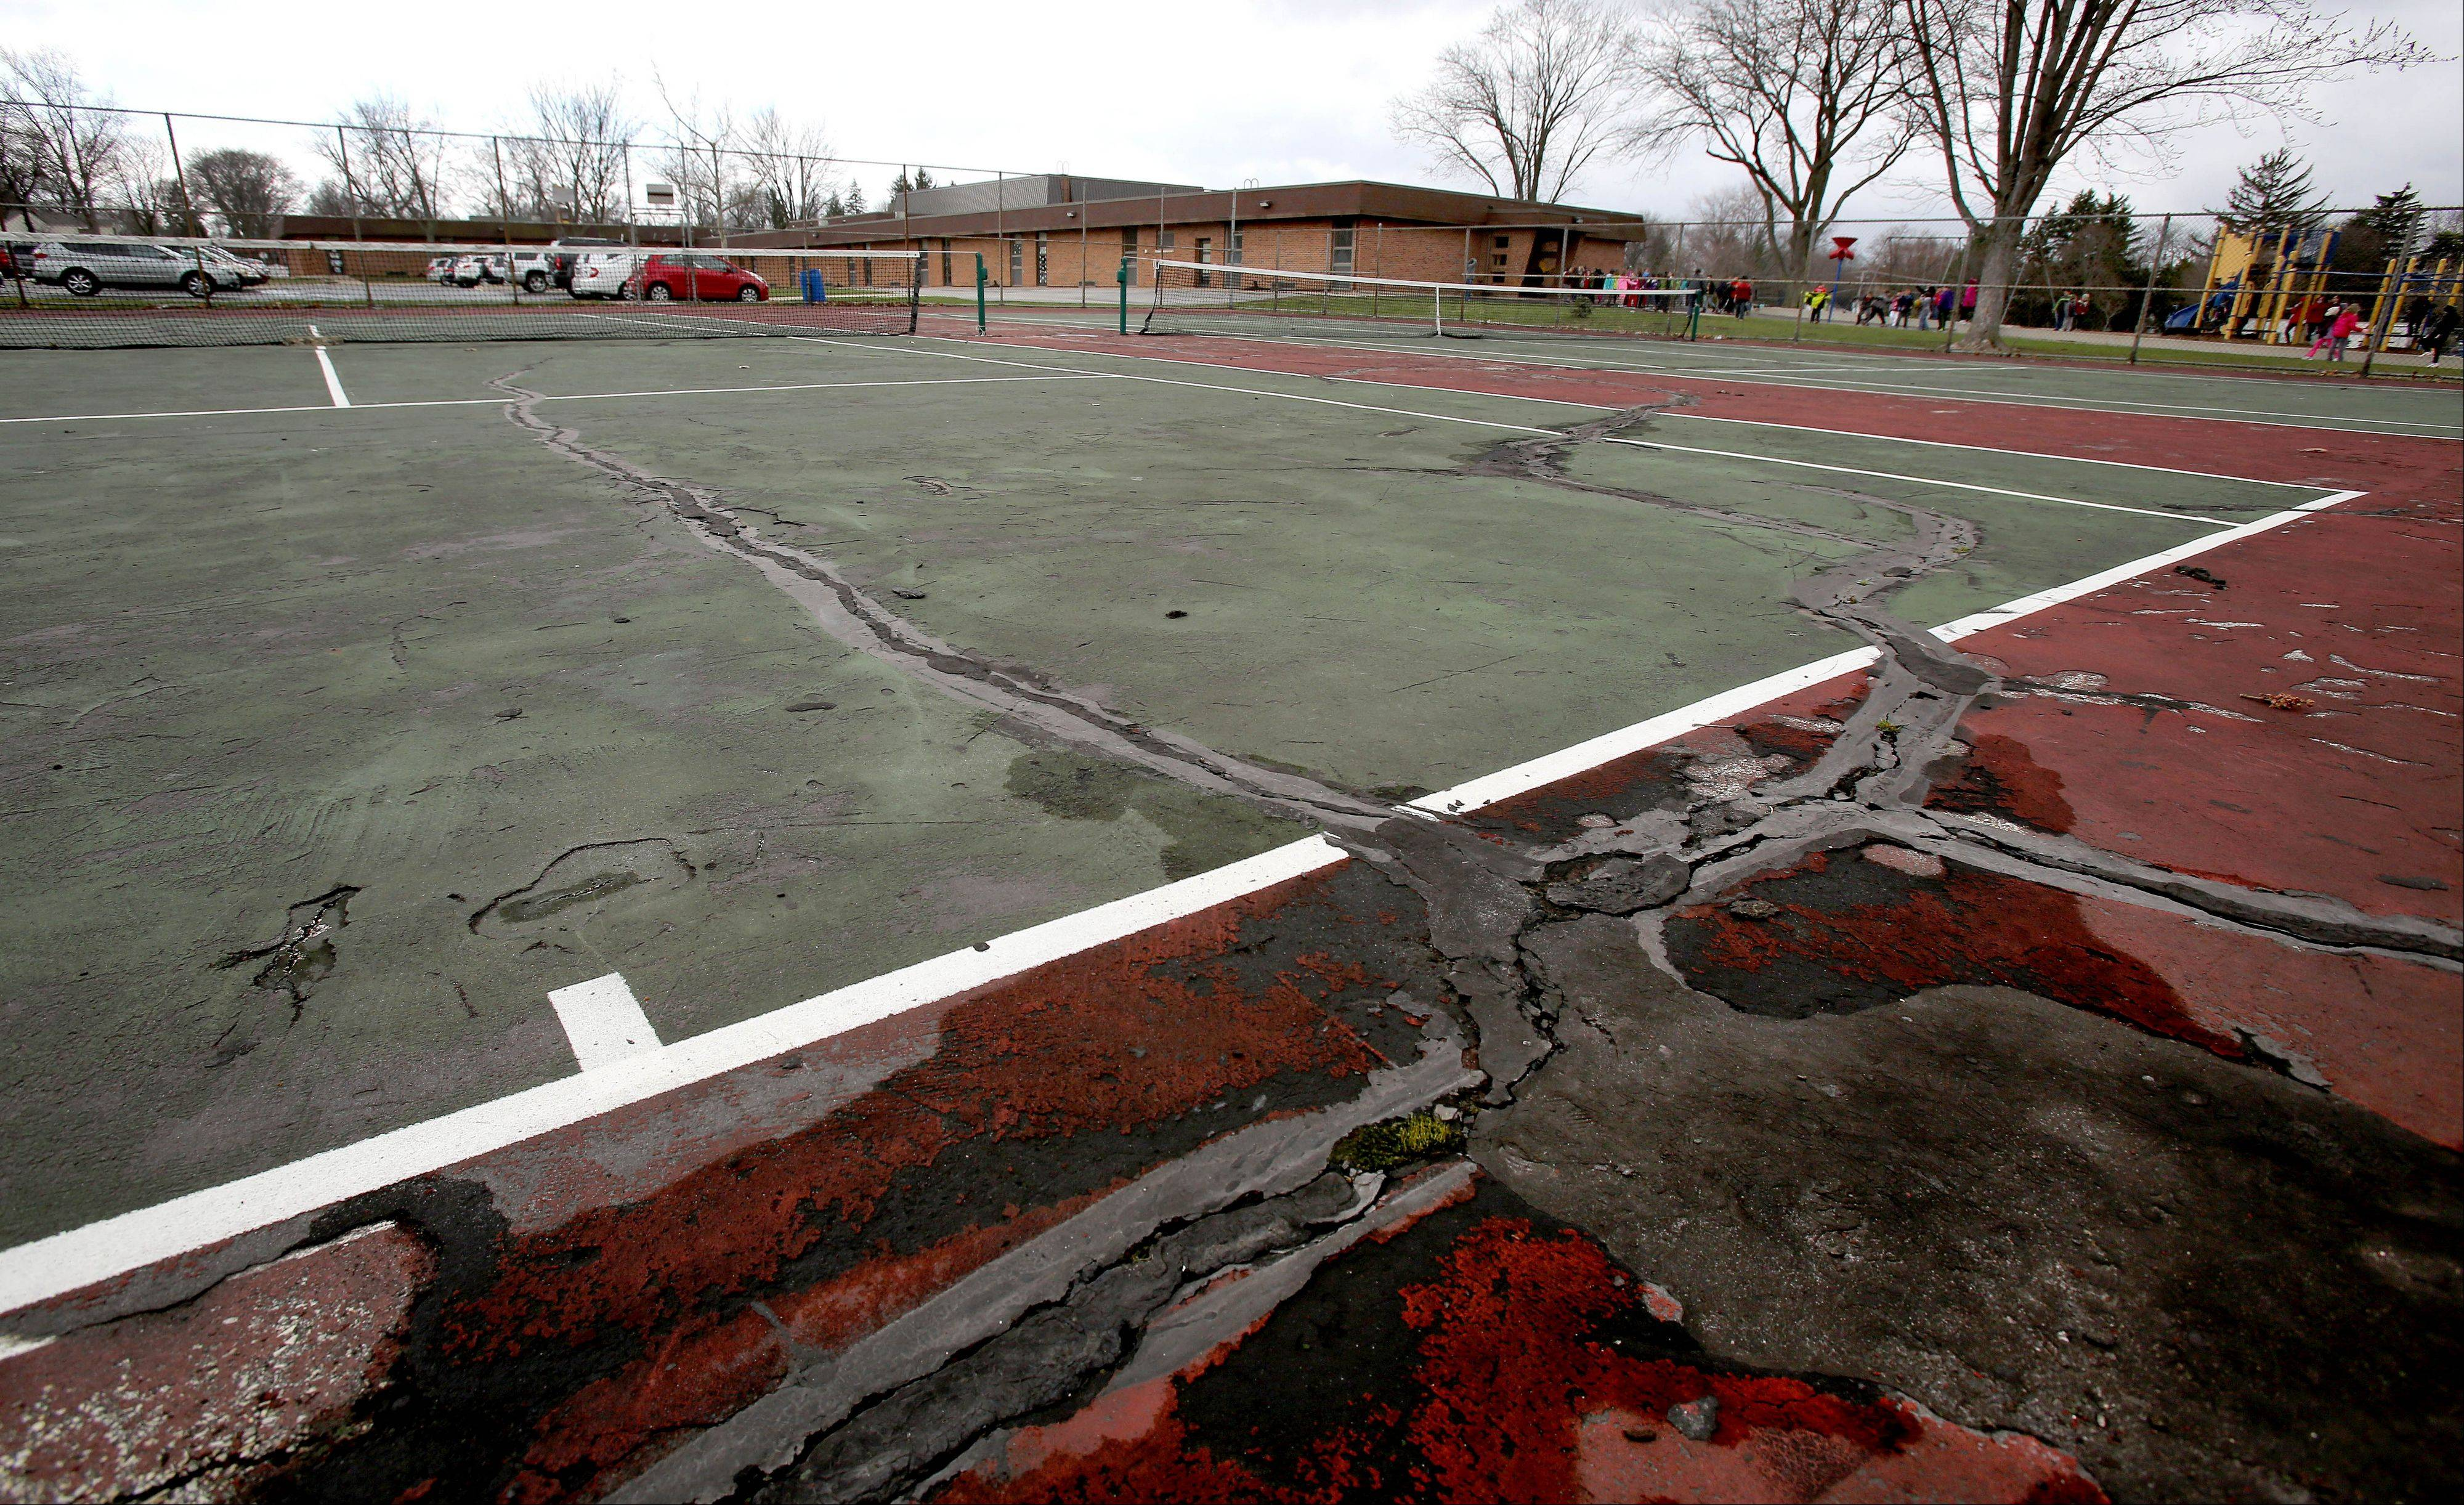 Parents concerned about the poor condition of tennis facilities outside Pleasant Lane Elementary School in Lombard are asking the Lombard Park District and Lombard Elementary District 44 to repair the two courts.